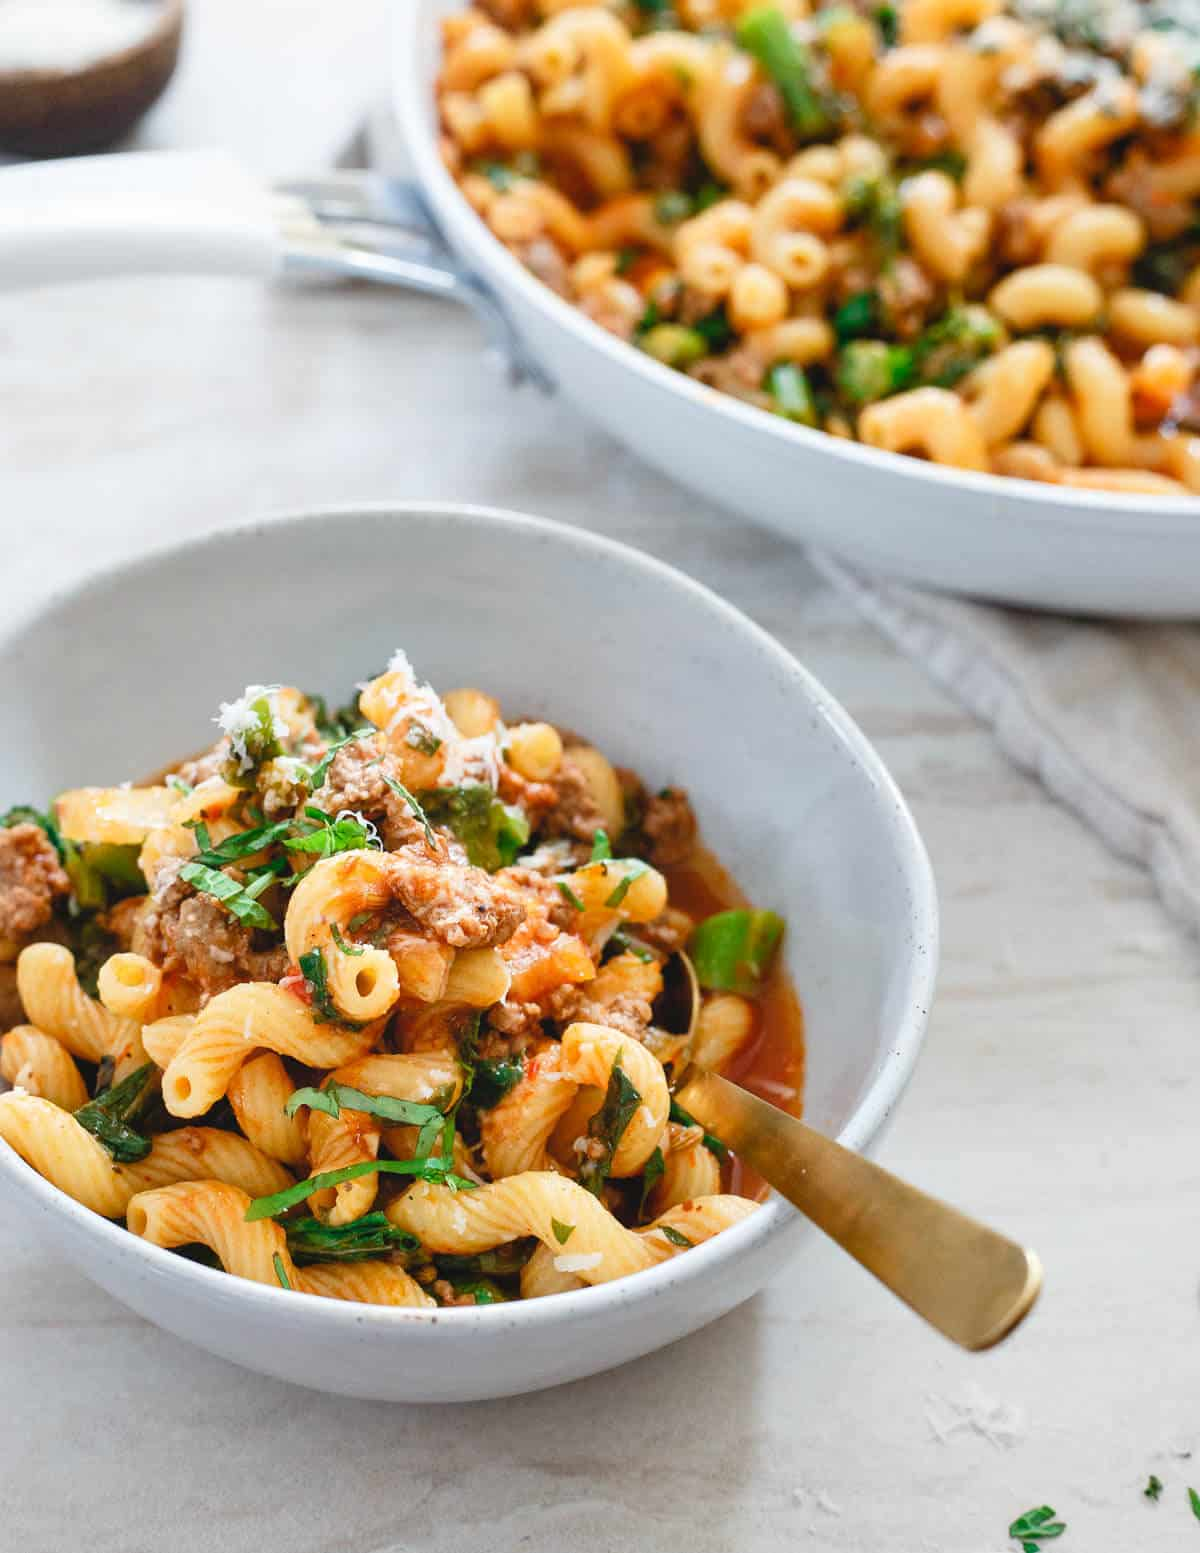 This lamb ragu is a spicy, spring inspired one-skillet dinner. Cavatappi pasta, crushed tomatoes and harissa paste make it flavorful and hearty.